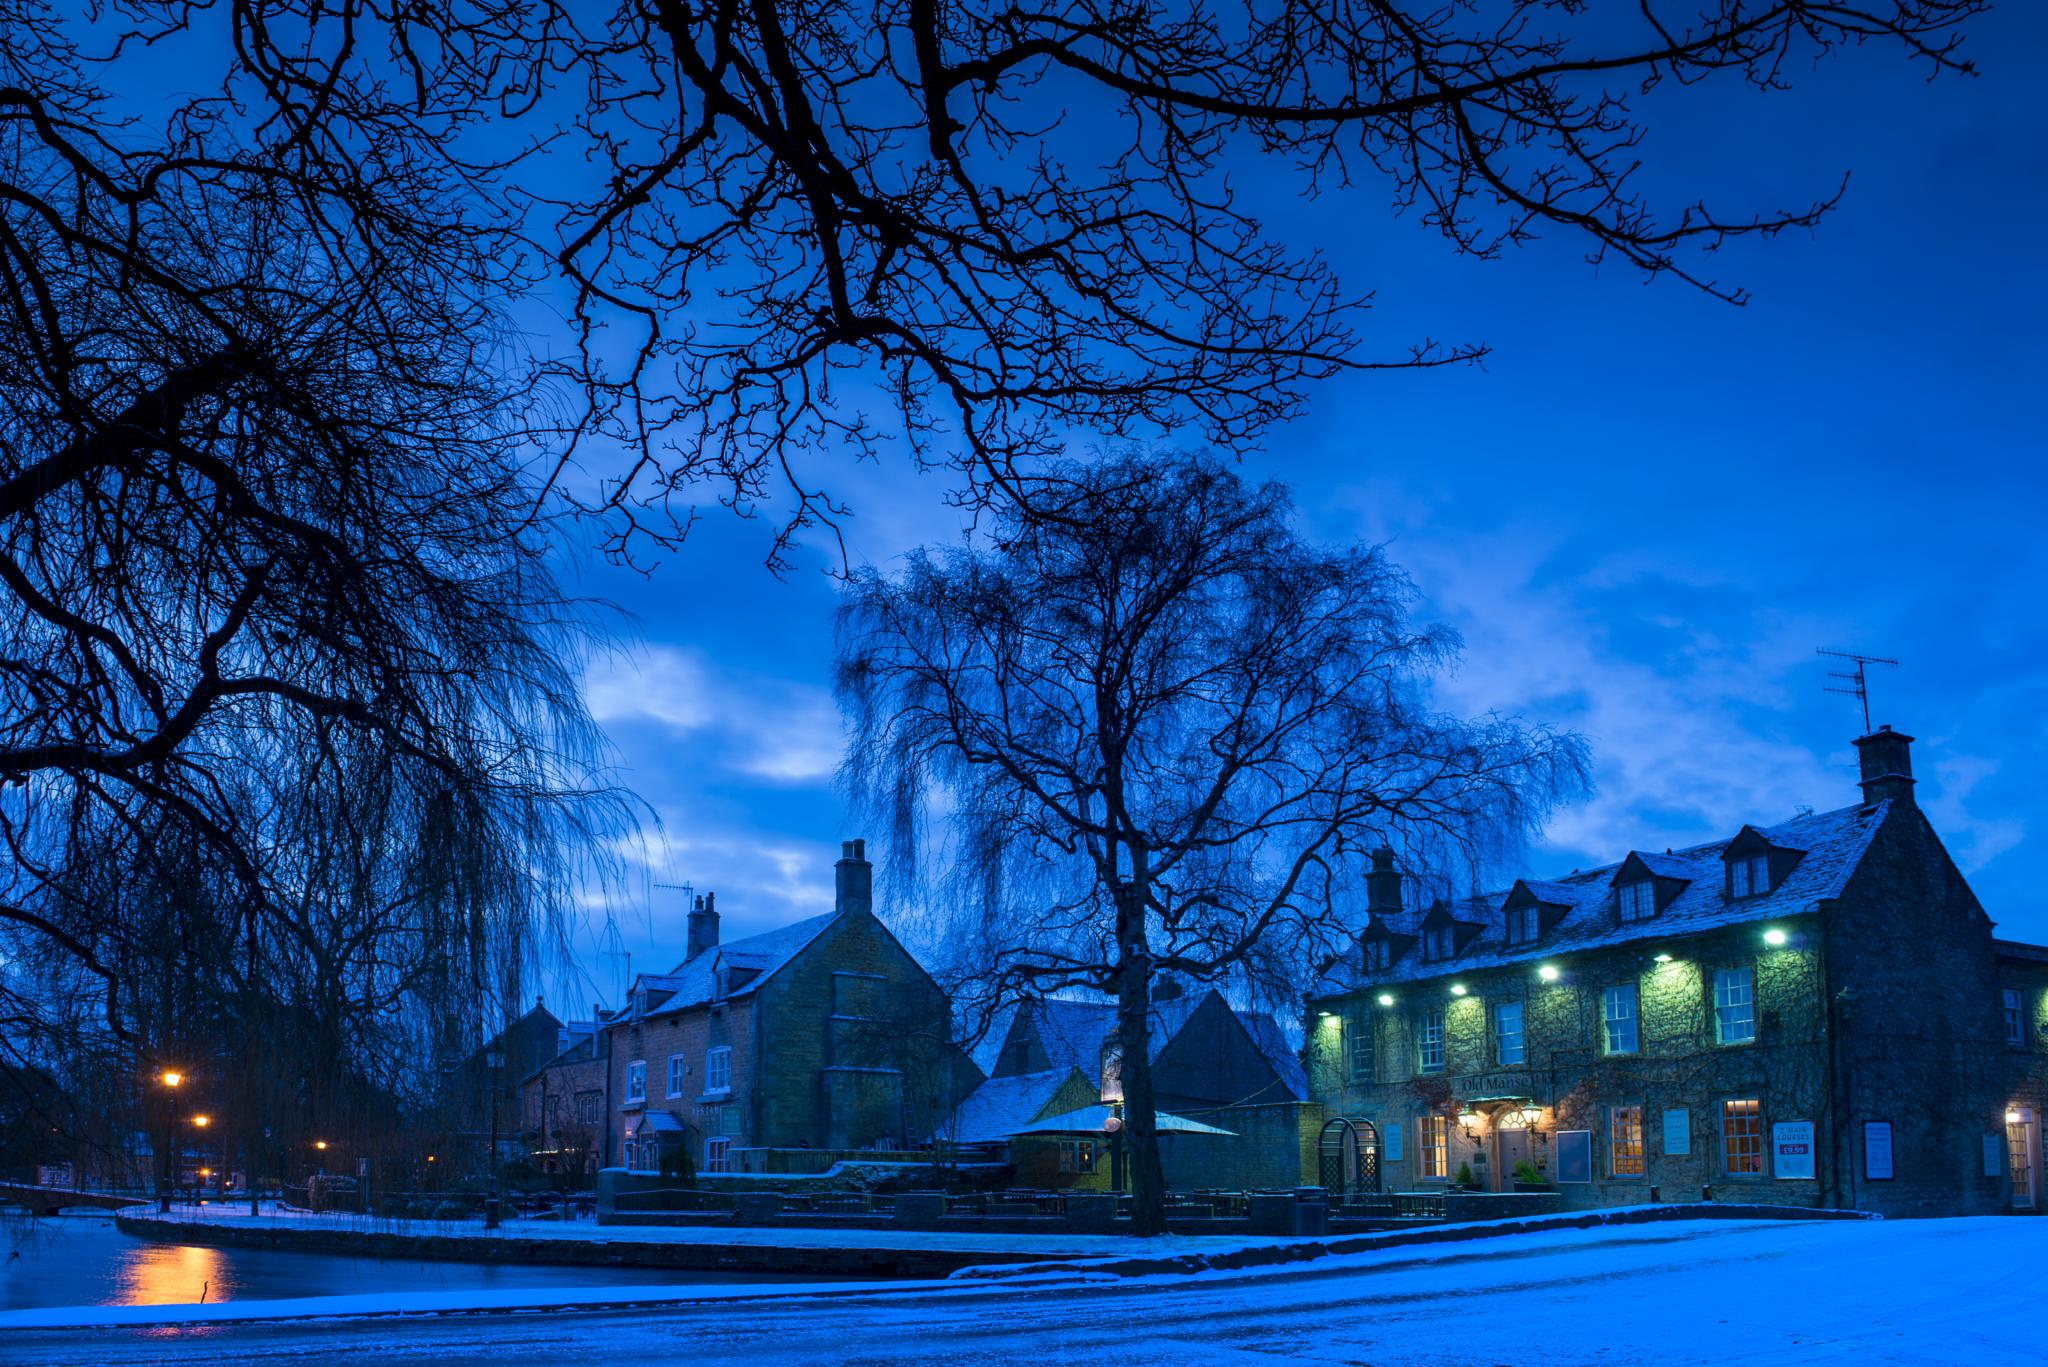 Winter Morning - Bourton on the Water by The Picture Taker